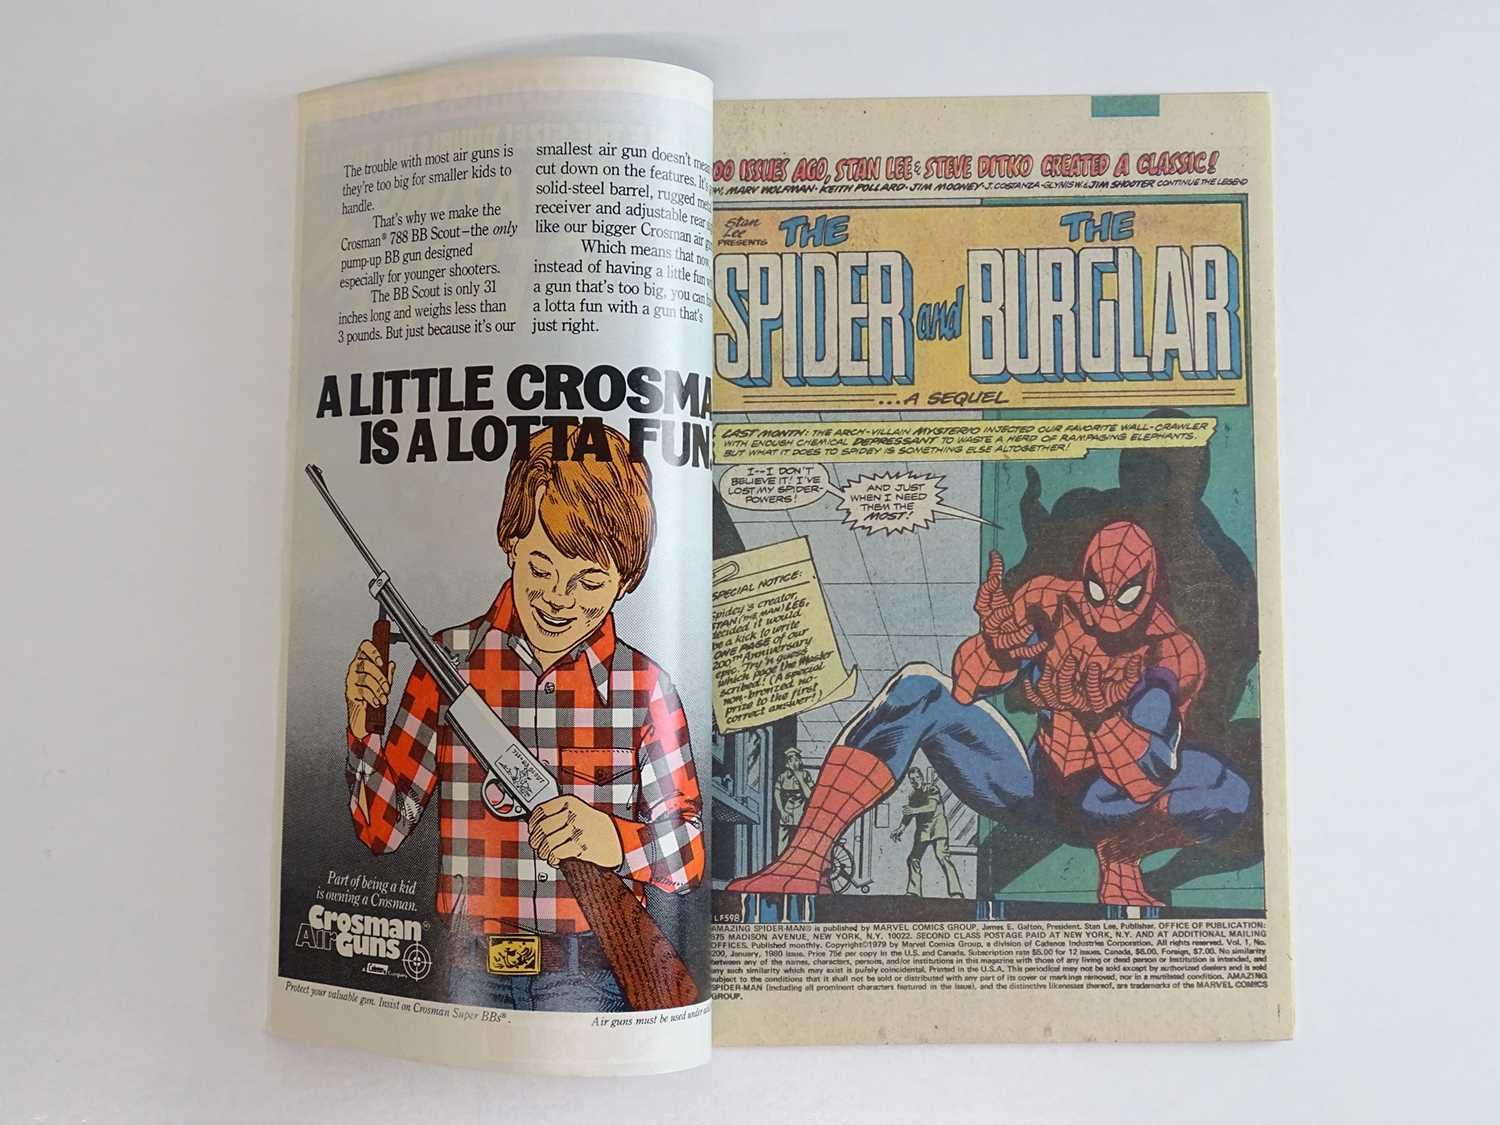 AMAZING SPIDER-MAN #200 - (1980 - MARVEL) - Spider-Man's origin is retold and he confronts the - Image 3 of 9